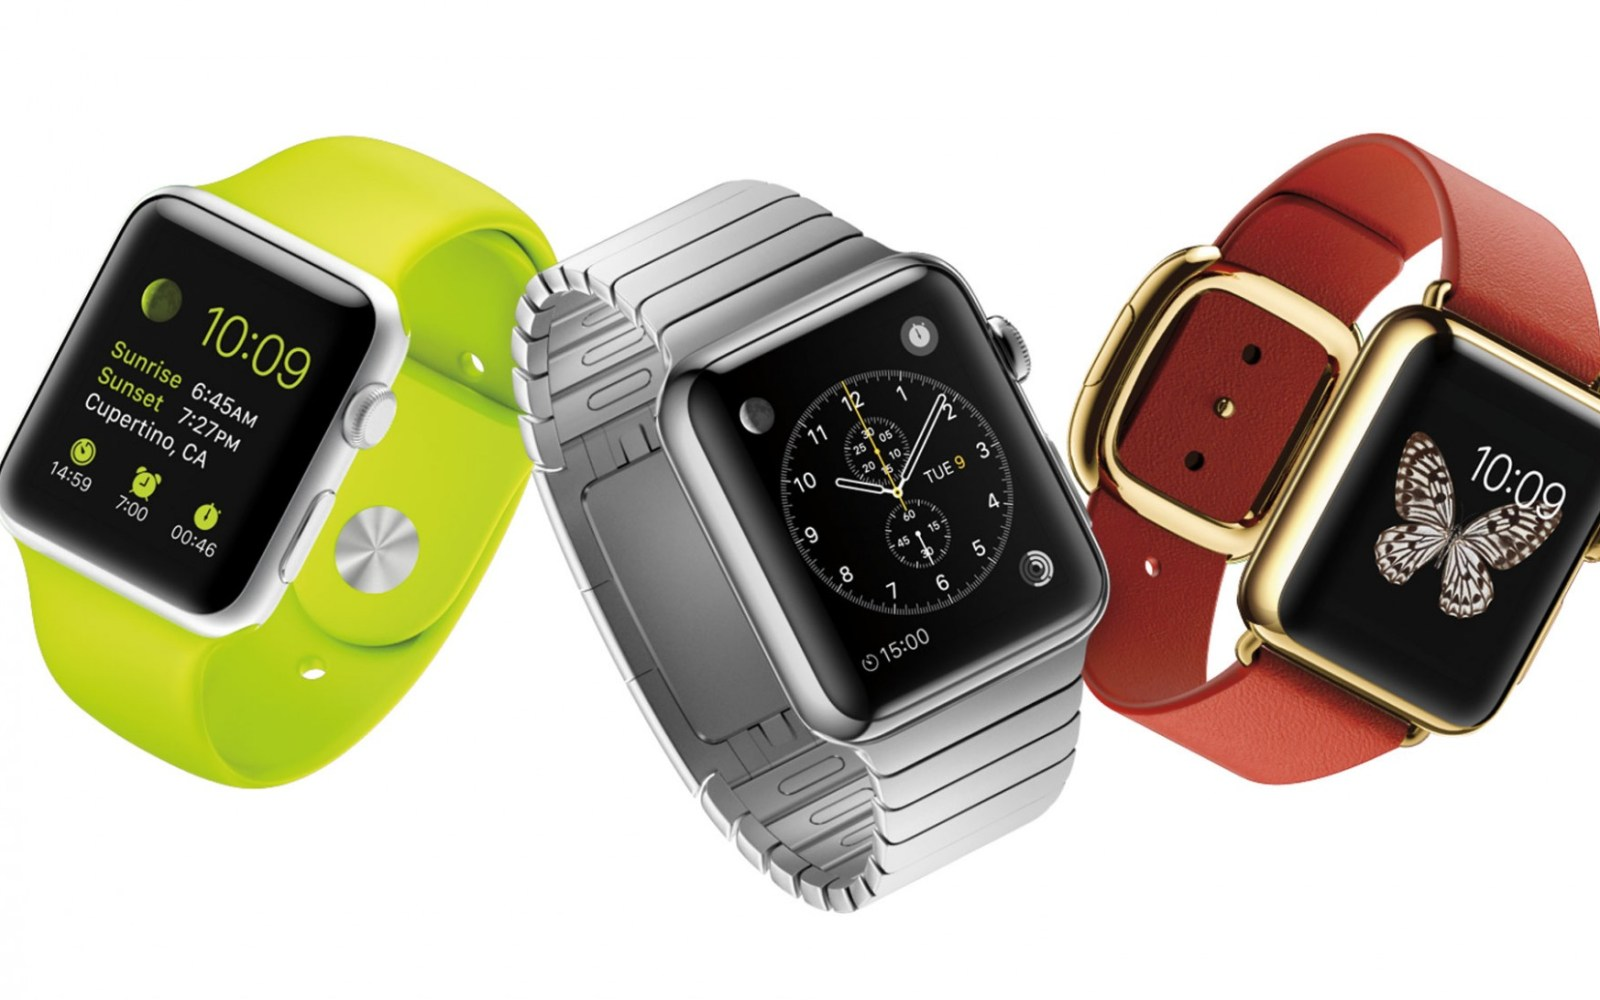 Editorial: Will Apple Watch begin as a monster success or total flop? Neither